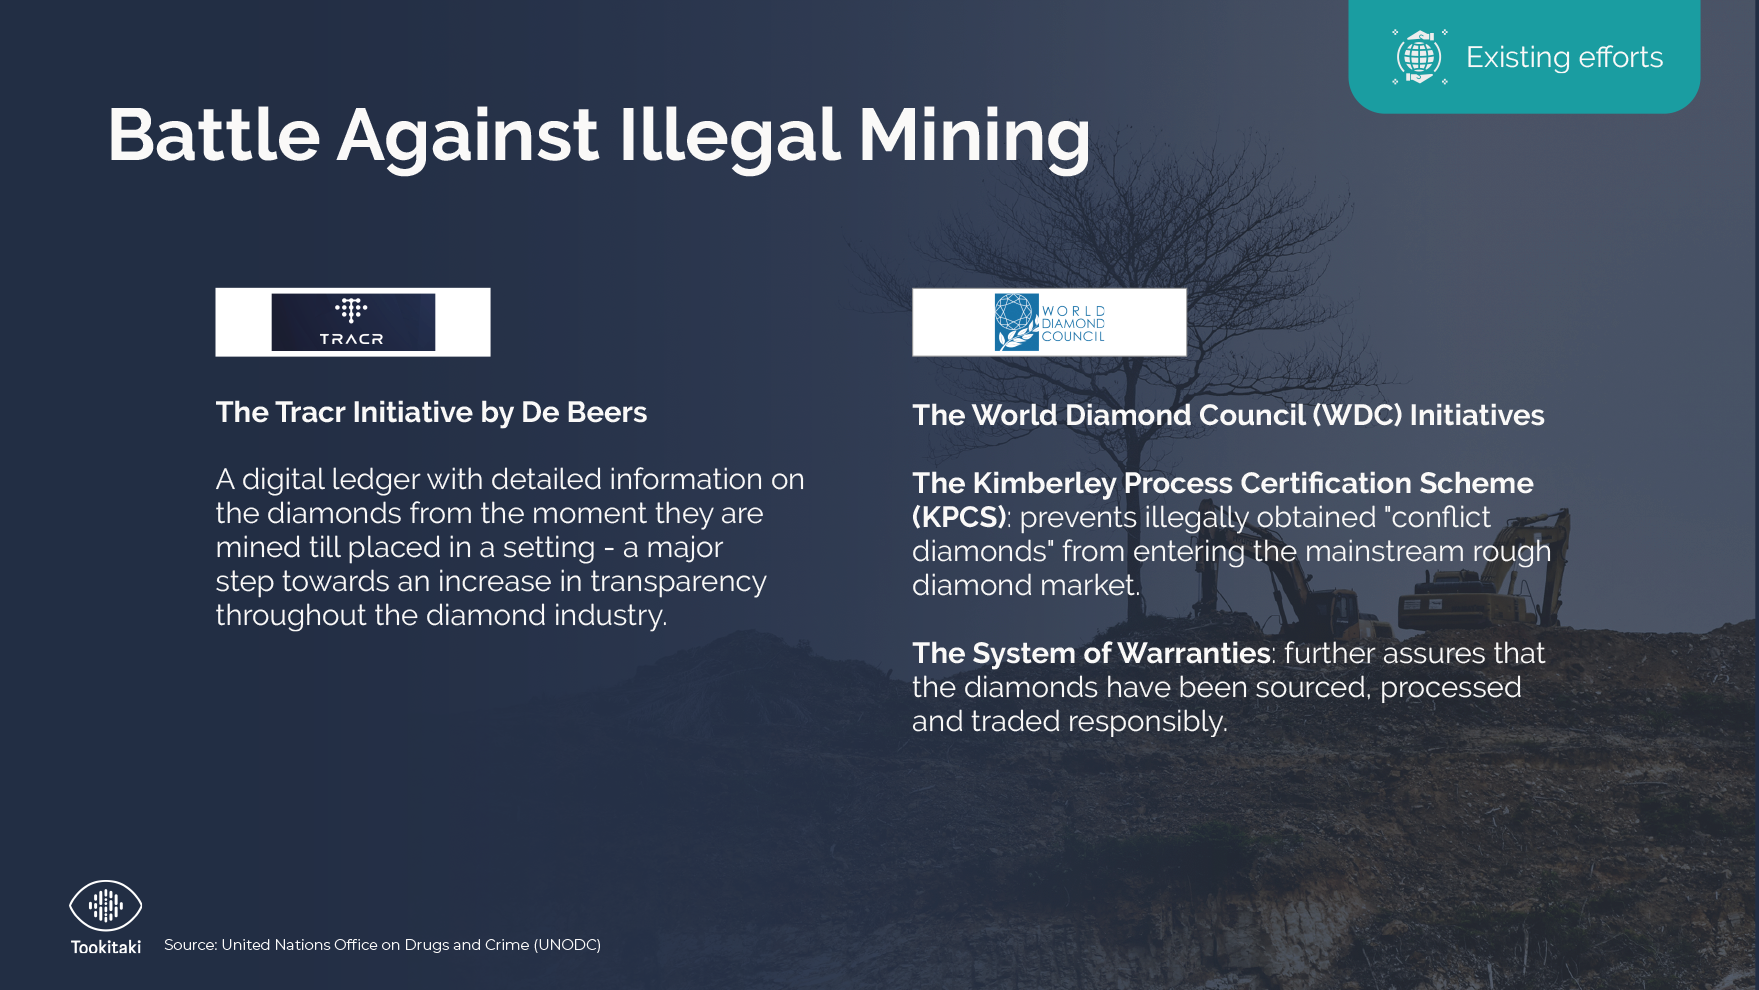 Battle Against Illegal Mining